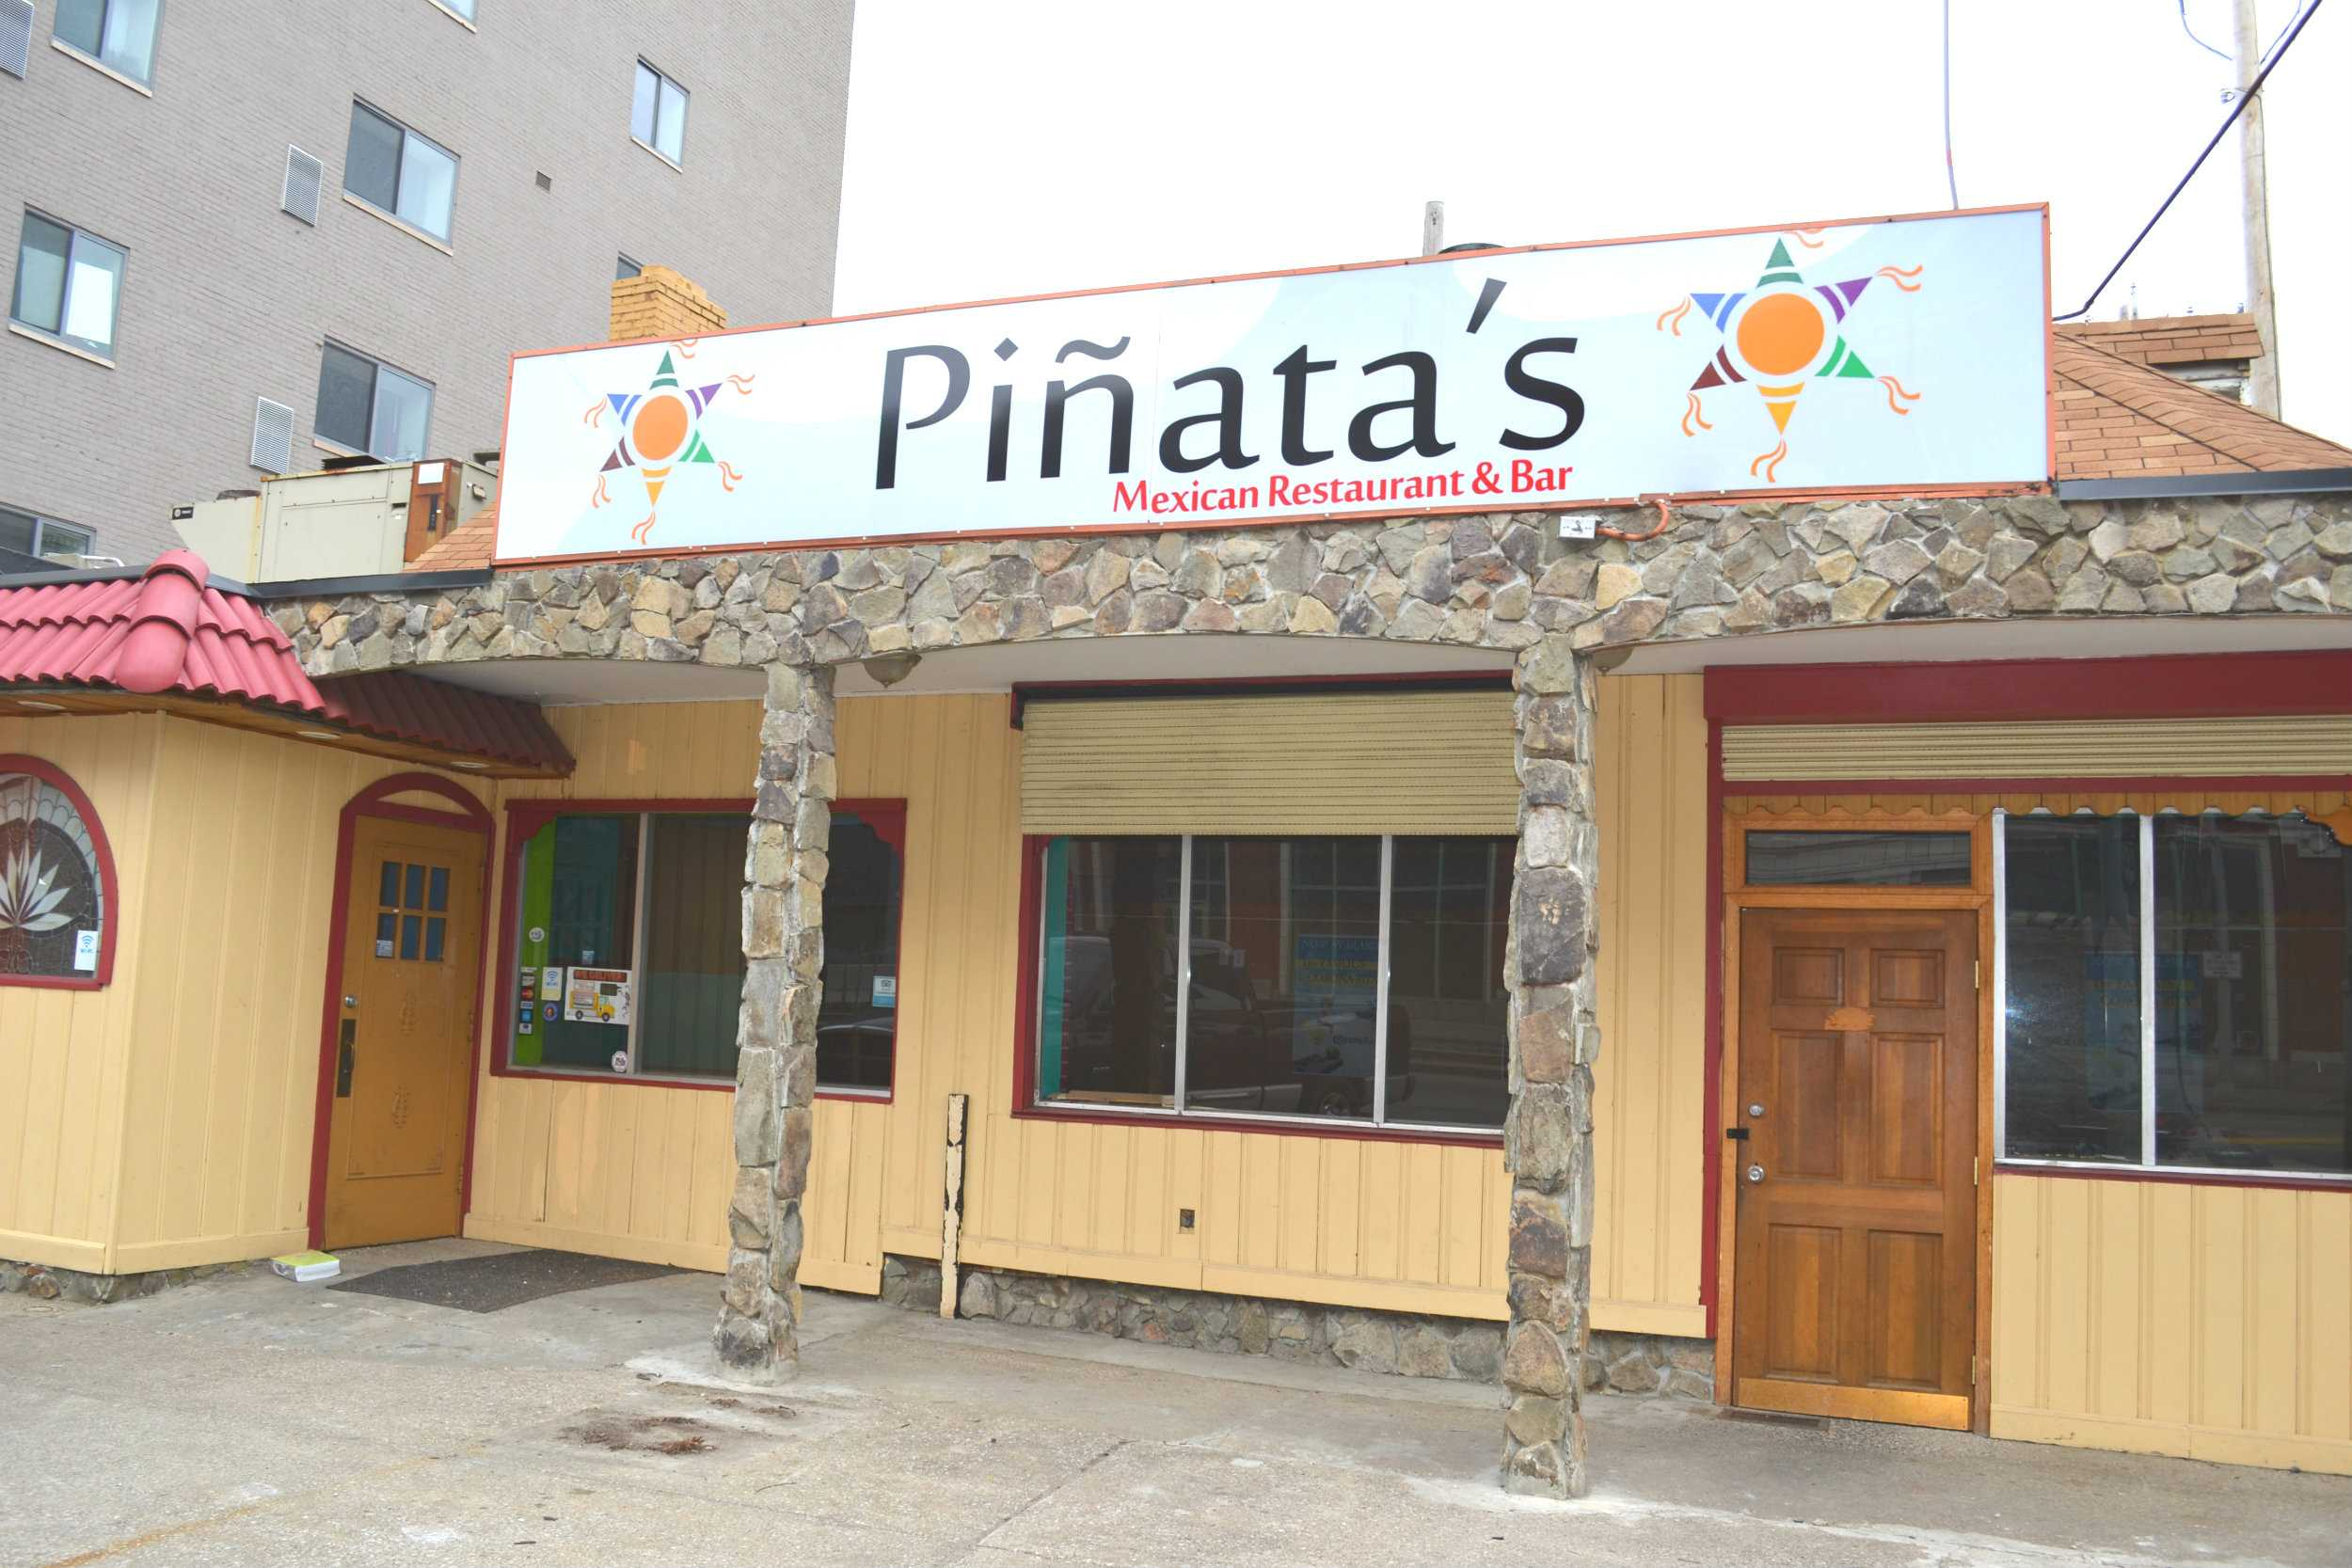 Piñata's, a popular Mexican resturant located on Euclid Avenue. The apartments that will replace the resturant may be great for students looking for housing, but won't integrate and build the surrounding community and CWRU.